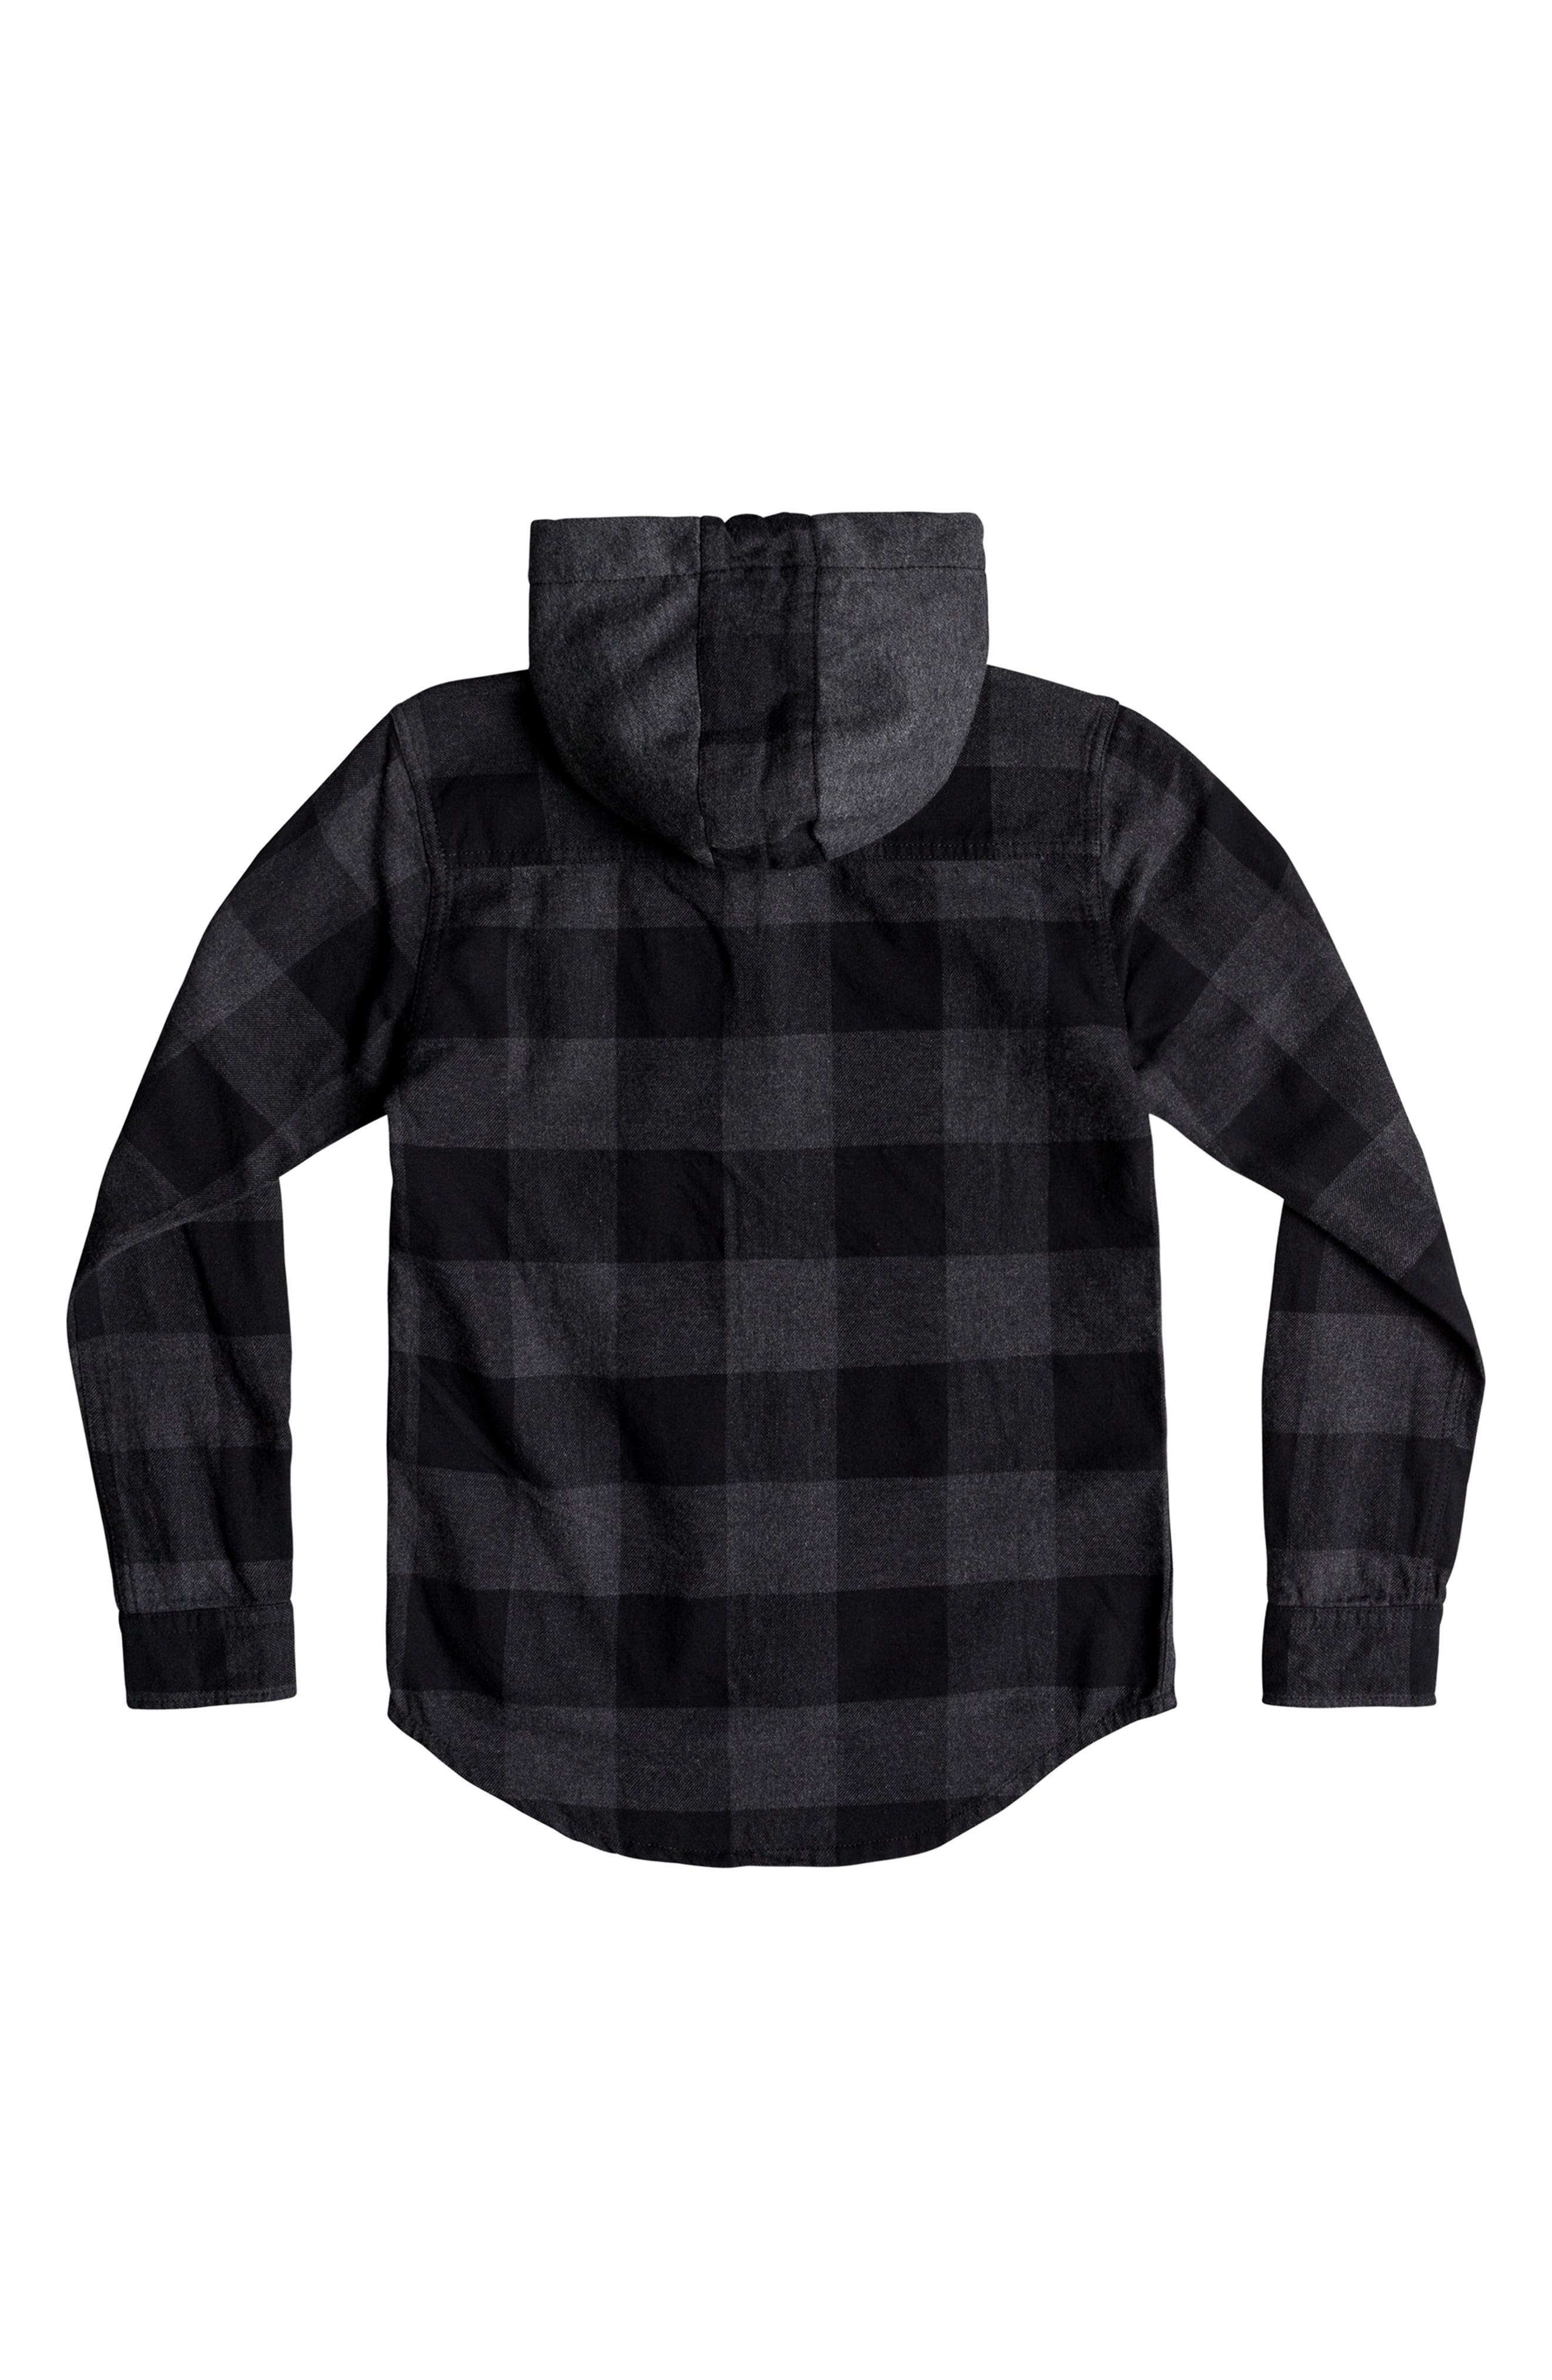 Motherfly Hooded Flannel Shirt,                             Alternate thumbnail 2, color,                             BLACK